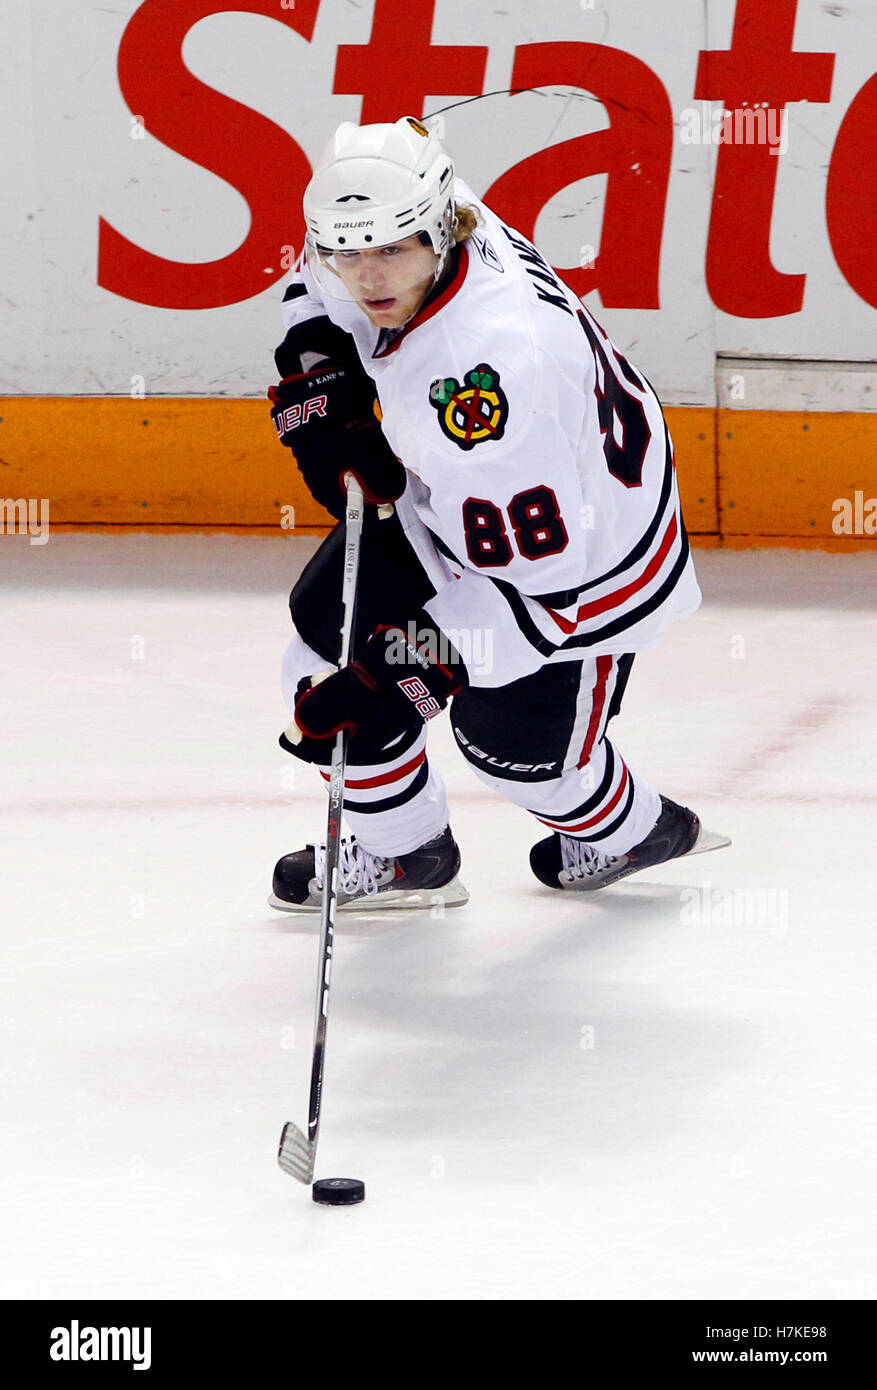 cbda0b2a7 Patrick Kane Stock Photos   Patrick Kane Stock Images - Alamy